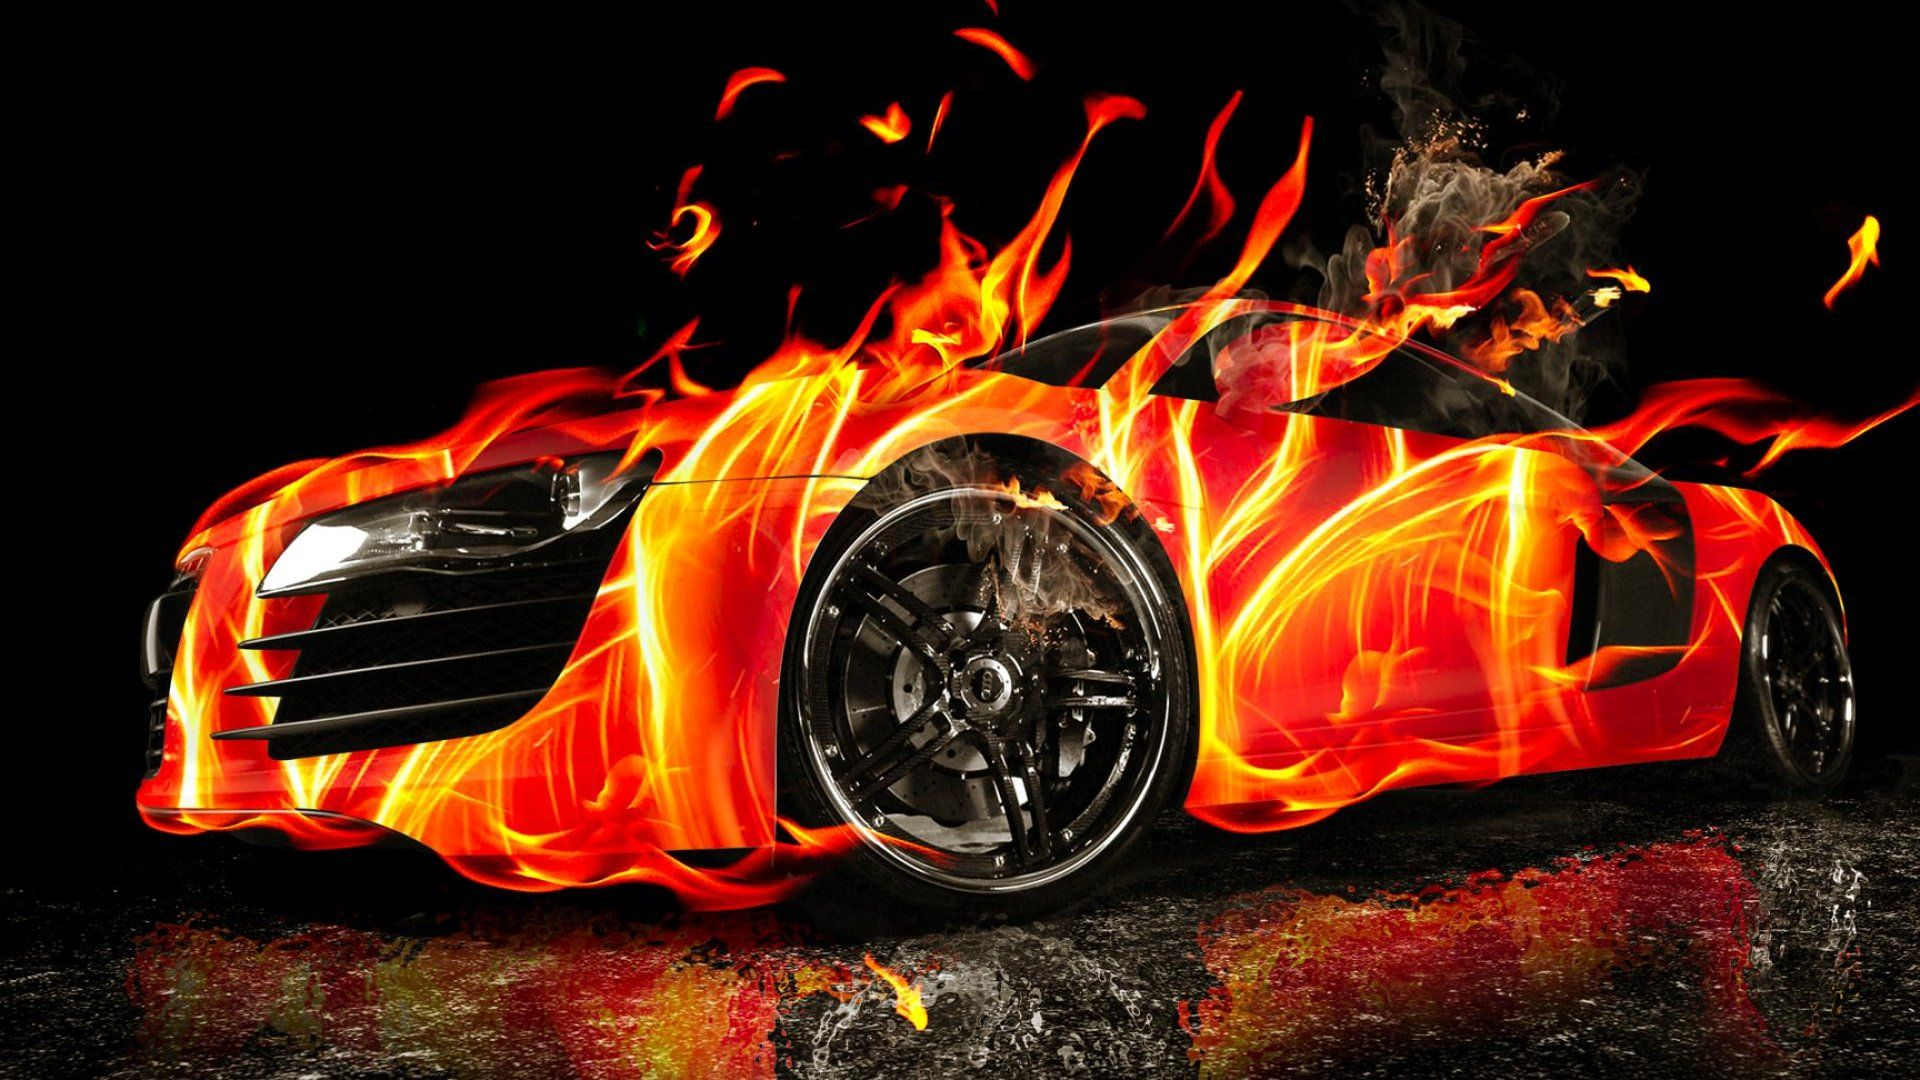 2021 ford mustang mach1 5k. Free Download Cool Background Of Fire Cars Cool Background Of Fire Cars For Desktop You Can Downloa Cool Wallpapers Cars Sports Car Wallpaper Car Wallpapers